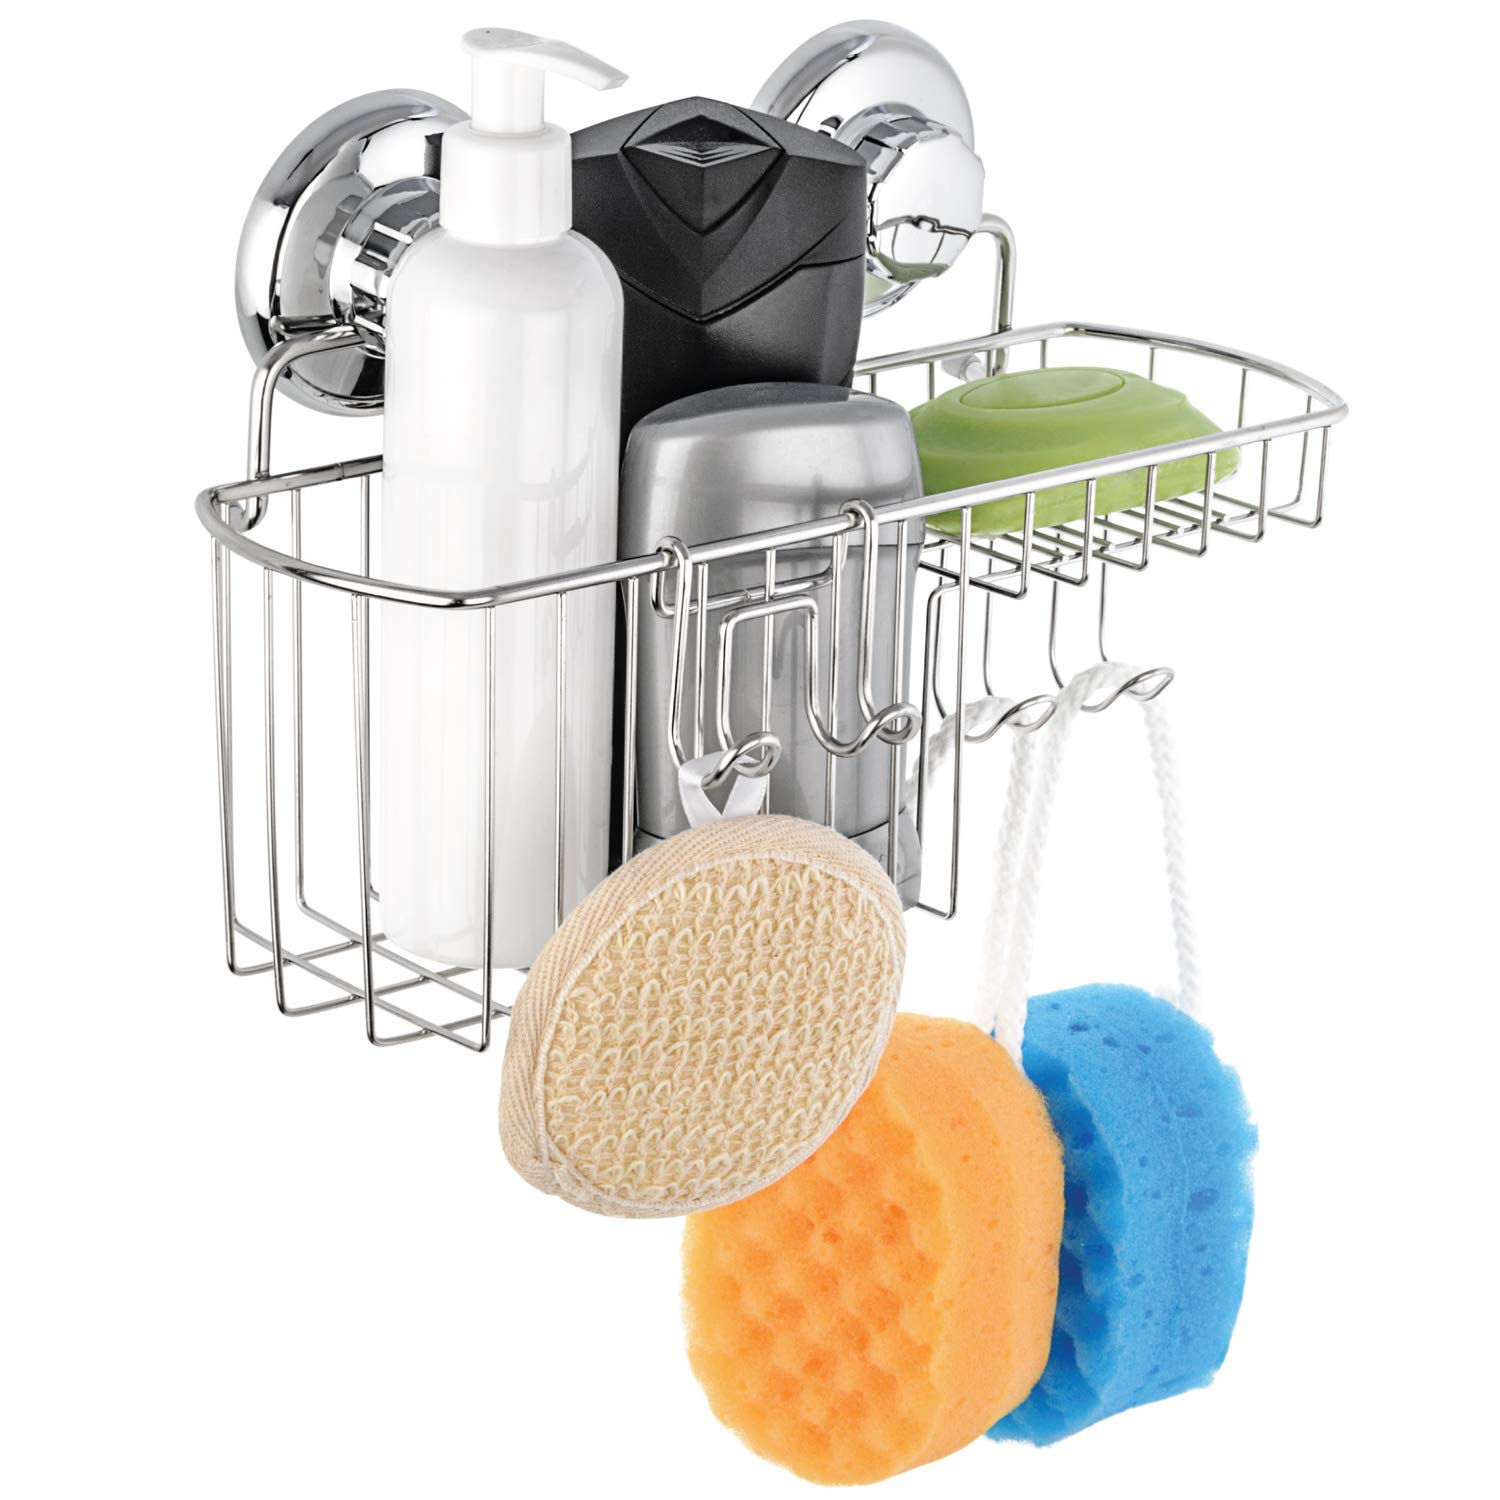 HASKO accessories Vacuum Suction Cup Shower Caddy | Shower Organizer for Shampoo with Hooks | Adhesive 3M Stick Discs | Holder for Bathroom Storage | 304 Polished Stainless Steel